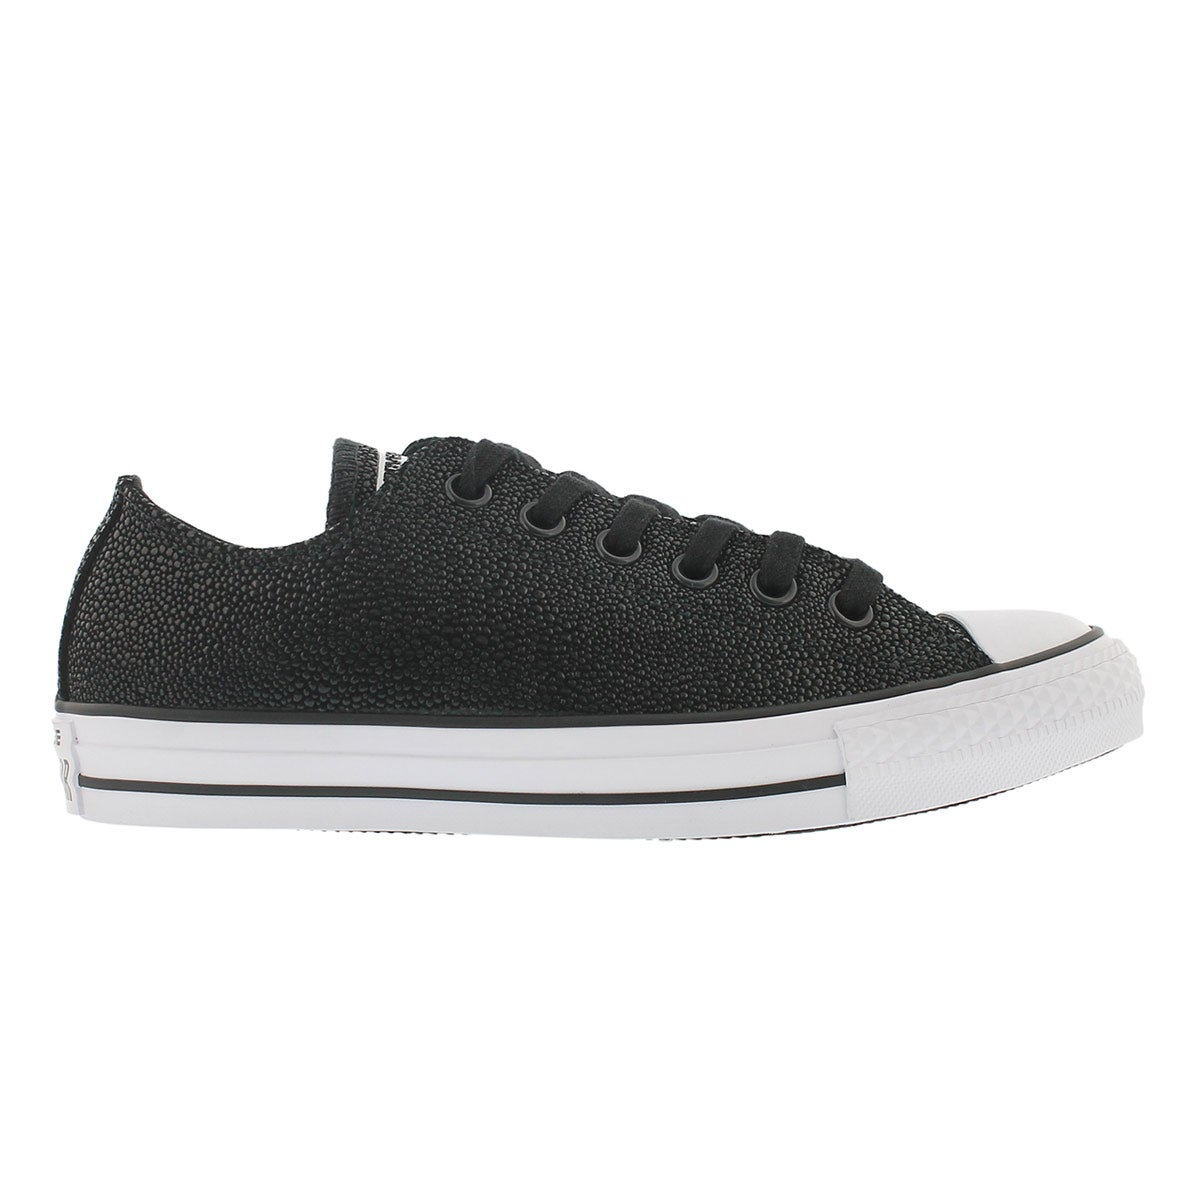 Lds CT A/S Stingray black oxford